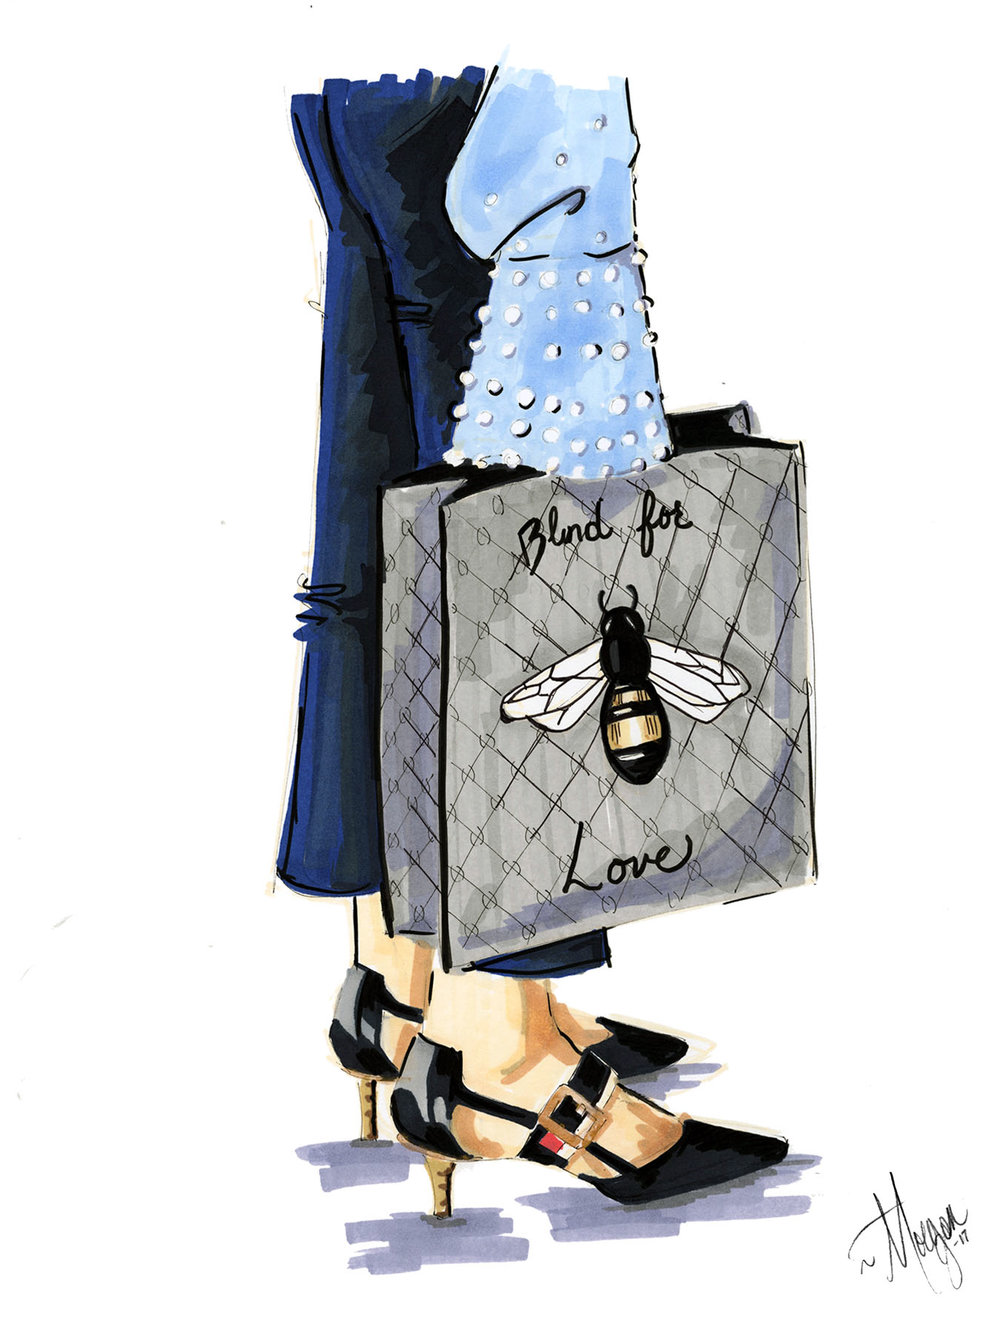 gucci-illustration-morgan-swank-studio.jpg